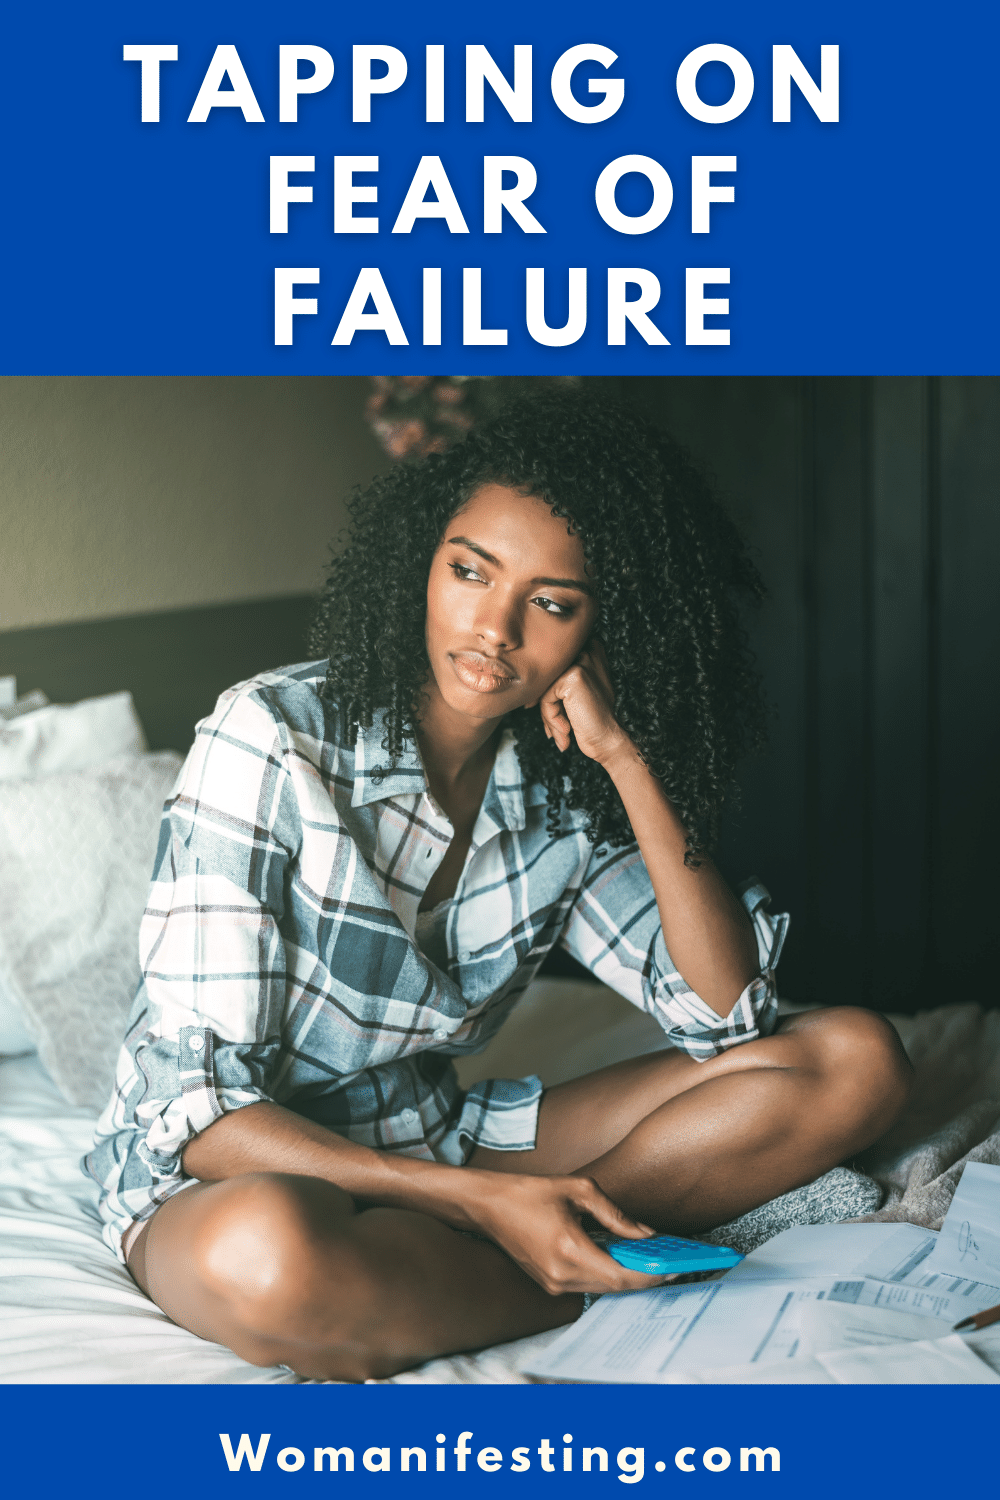 Tapping on Fear of Failure